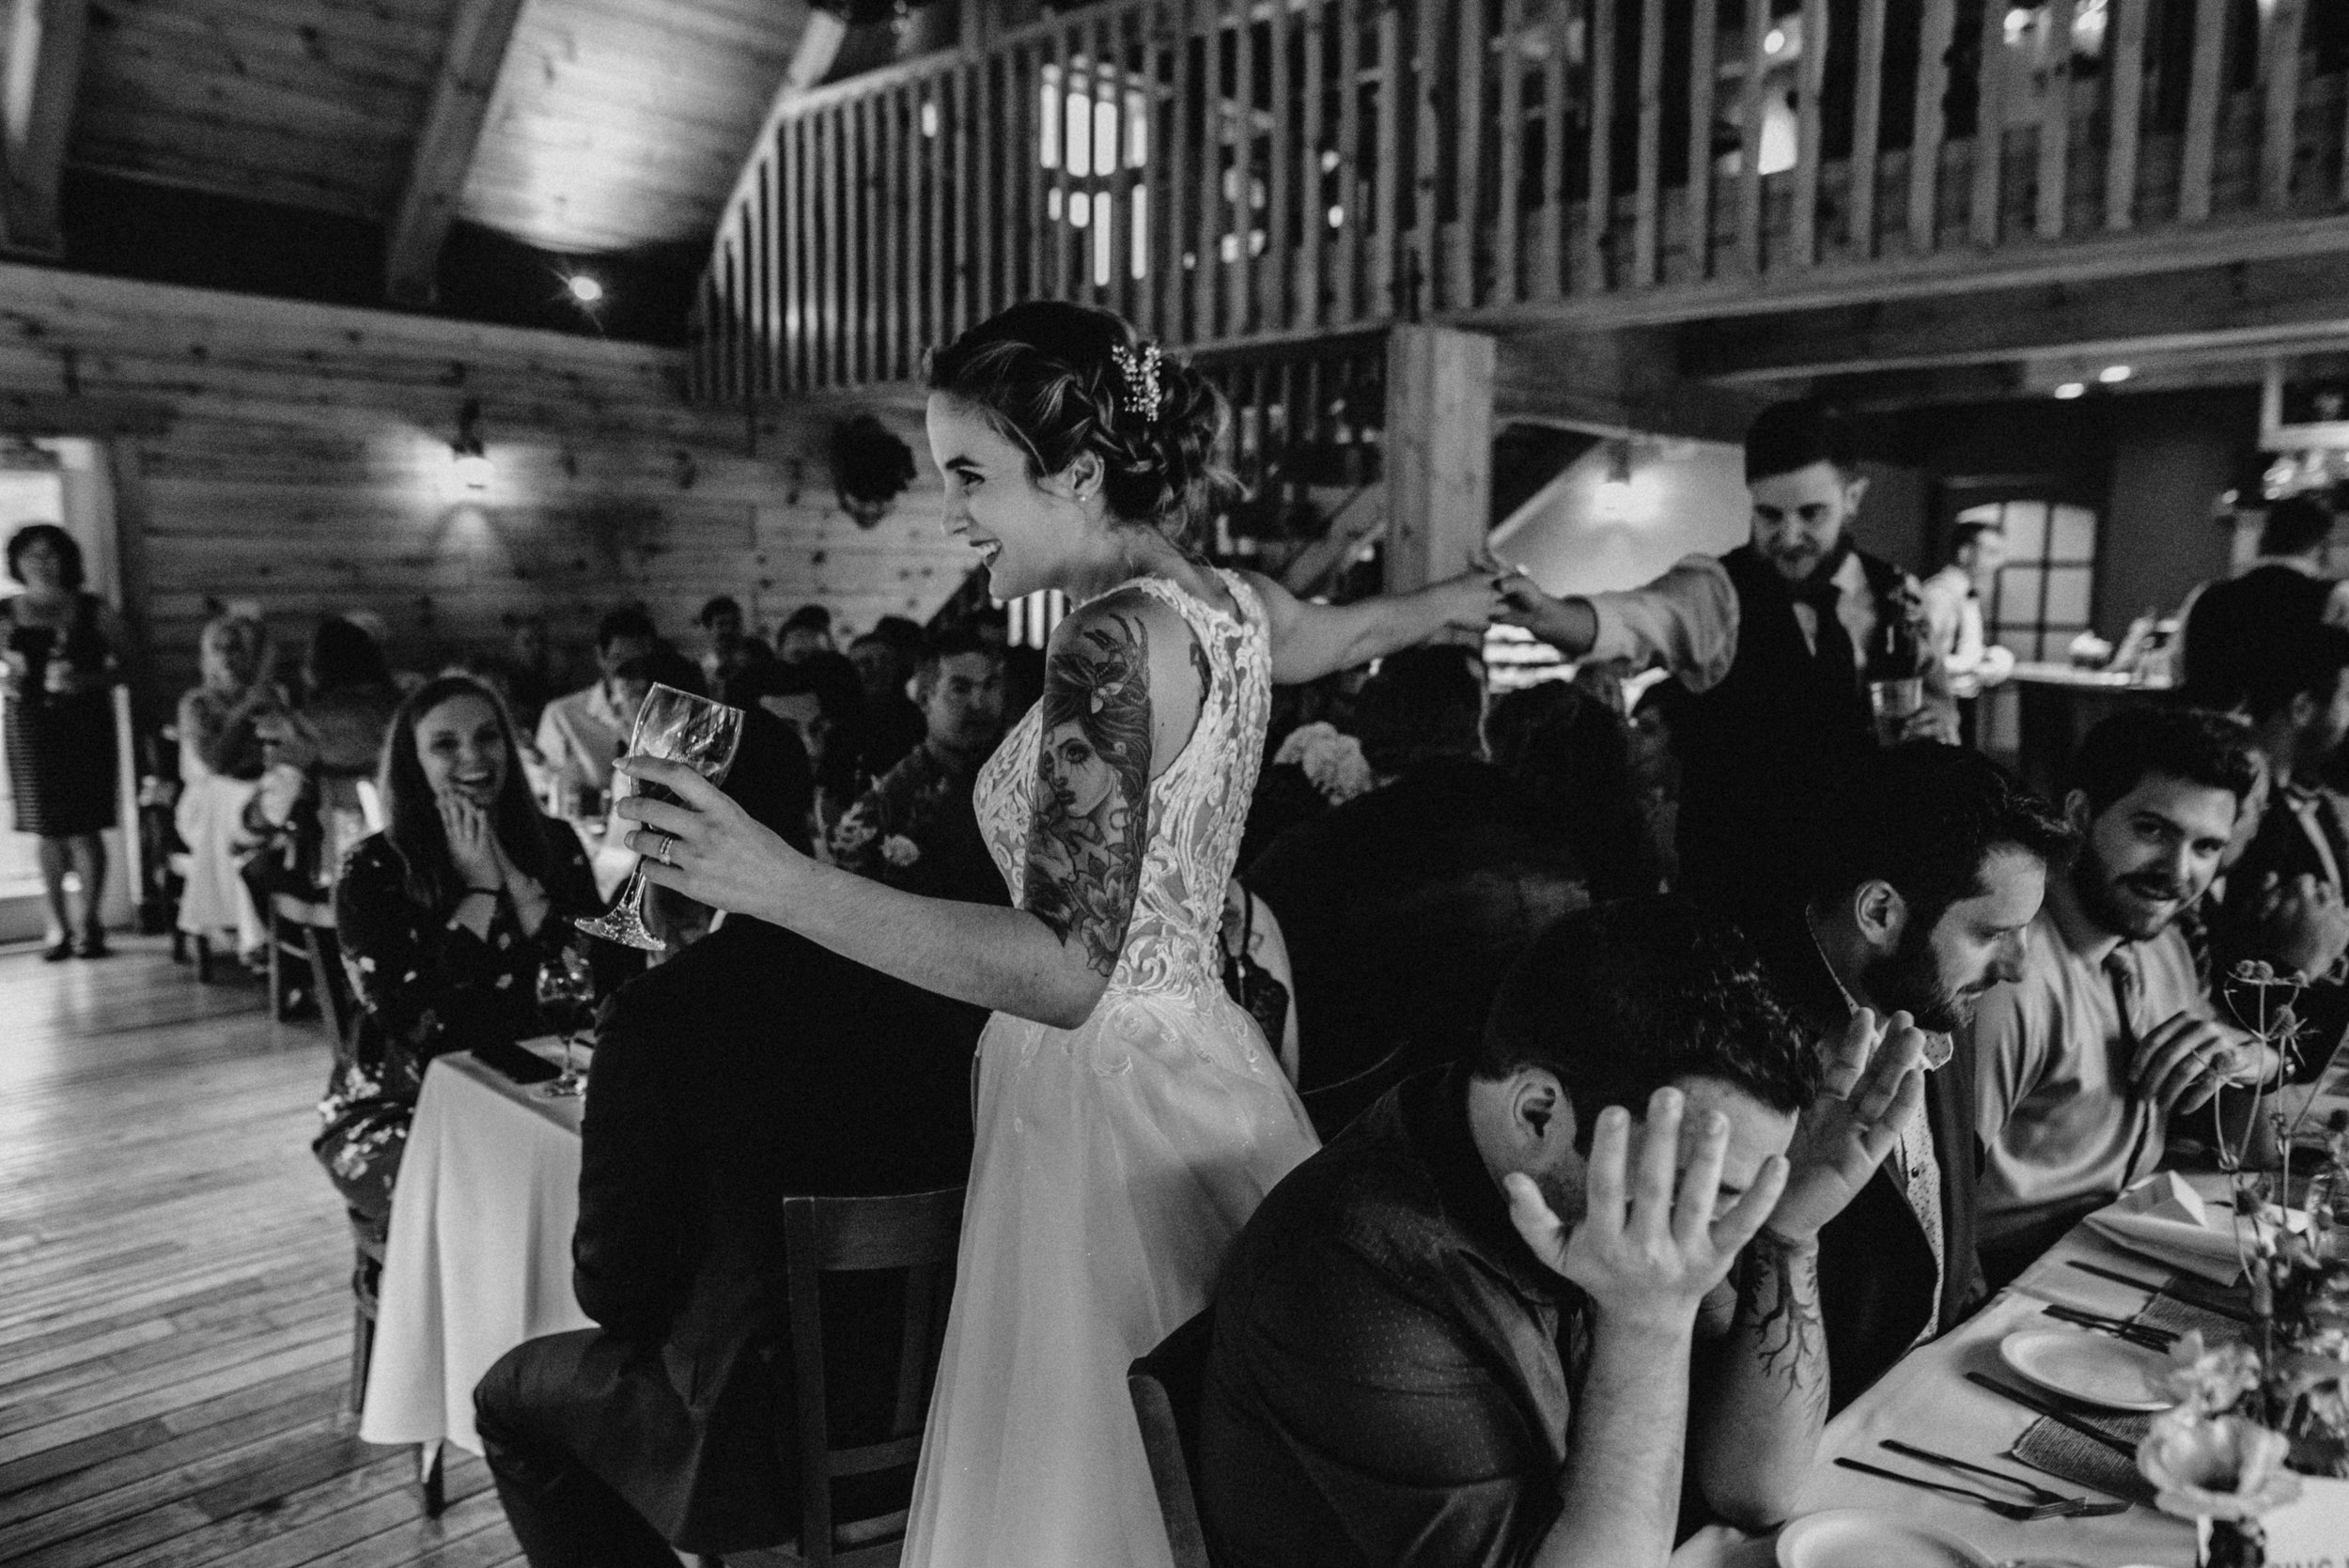 photographe_gatineau_mariage_ottawa_wedding_photographer_candid_natural_lifestyle_documentary_photography_photographie_naturelle_emotions_bride_intimate_elopment (56).JPG